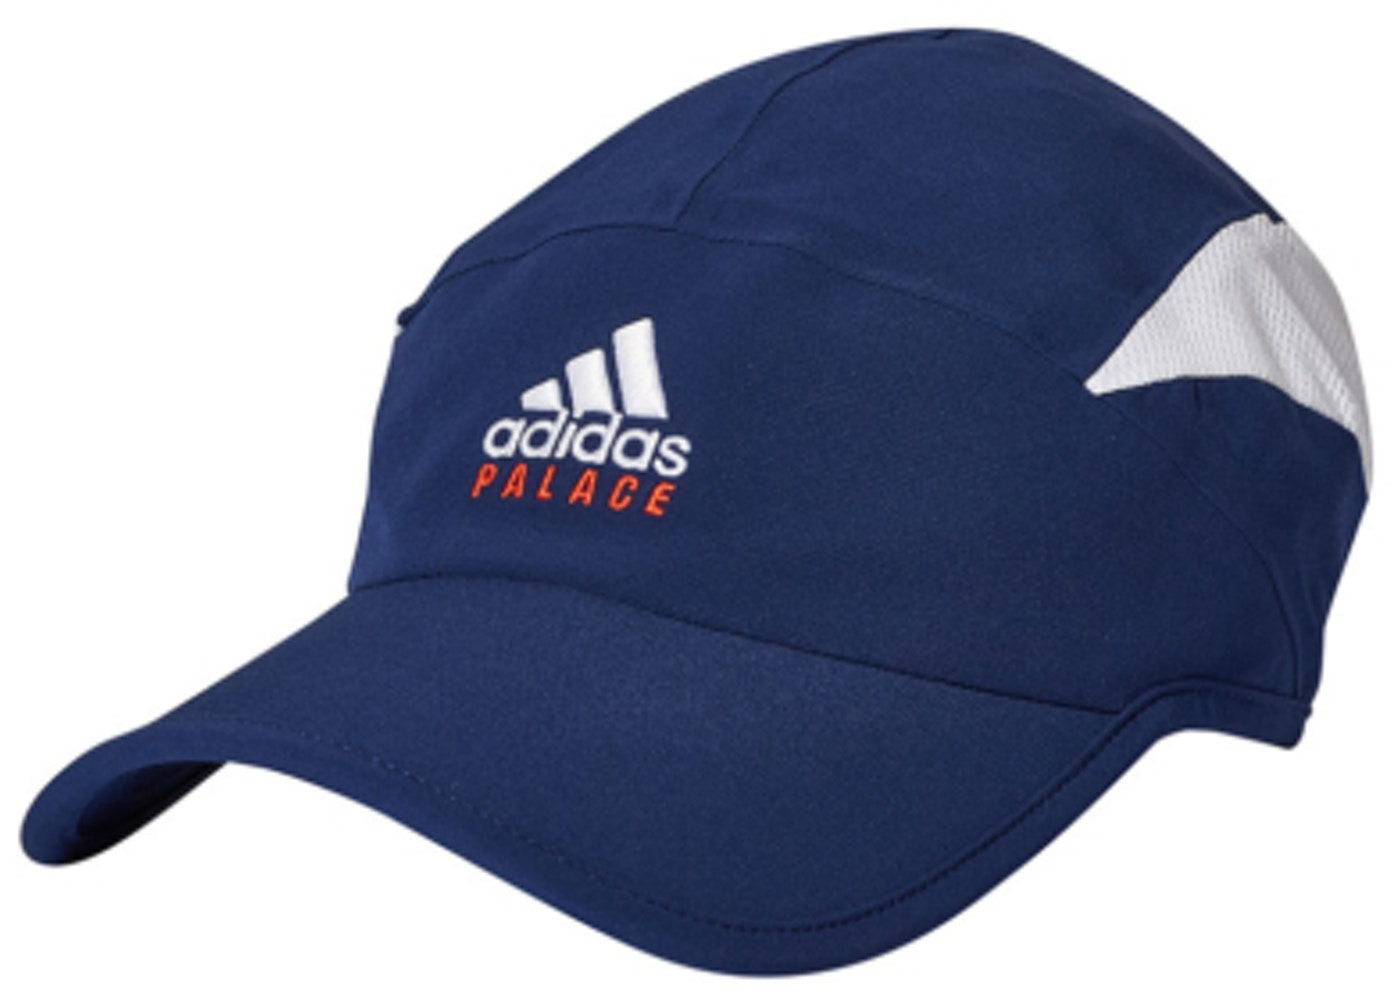 Palace adidas Off Court Cap Dark Blue - SS18 628ae4c9ec7